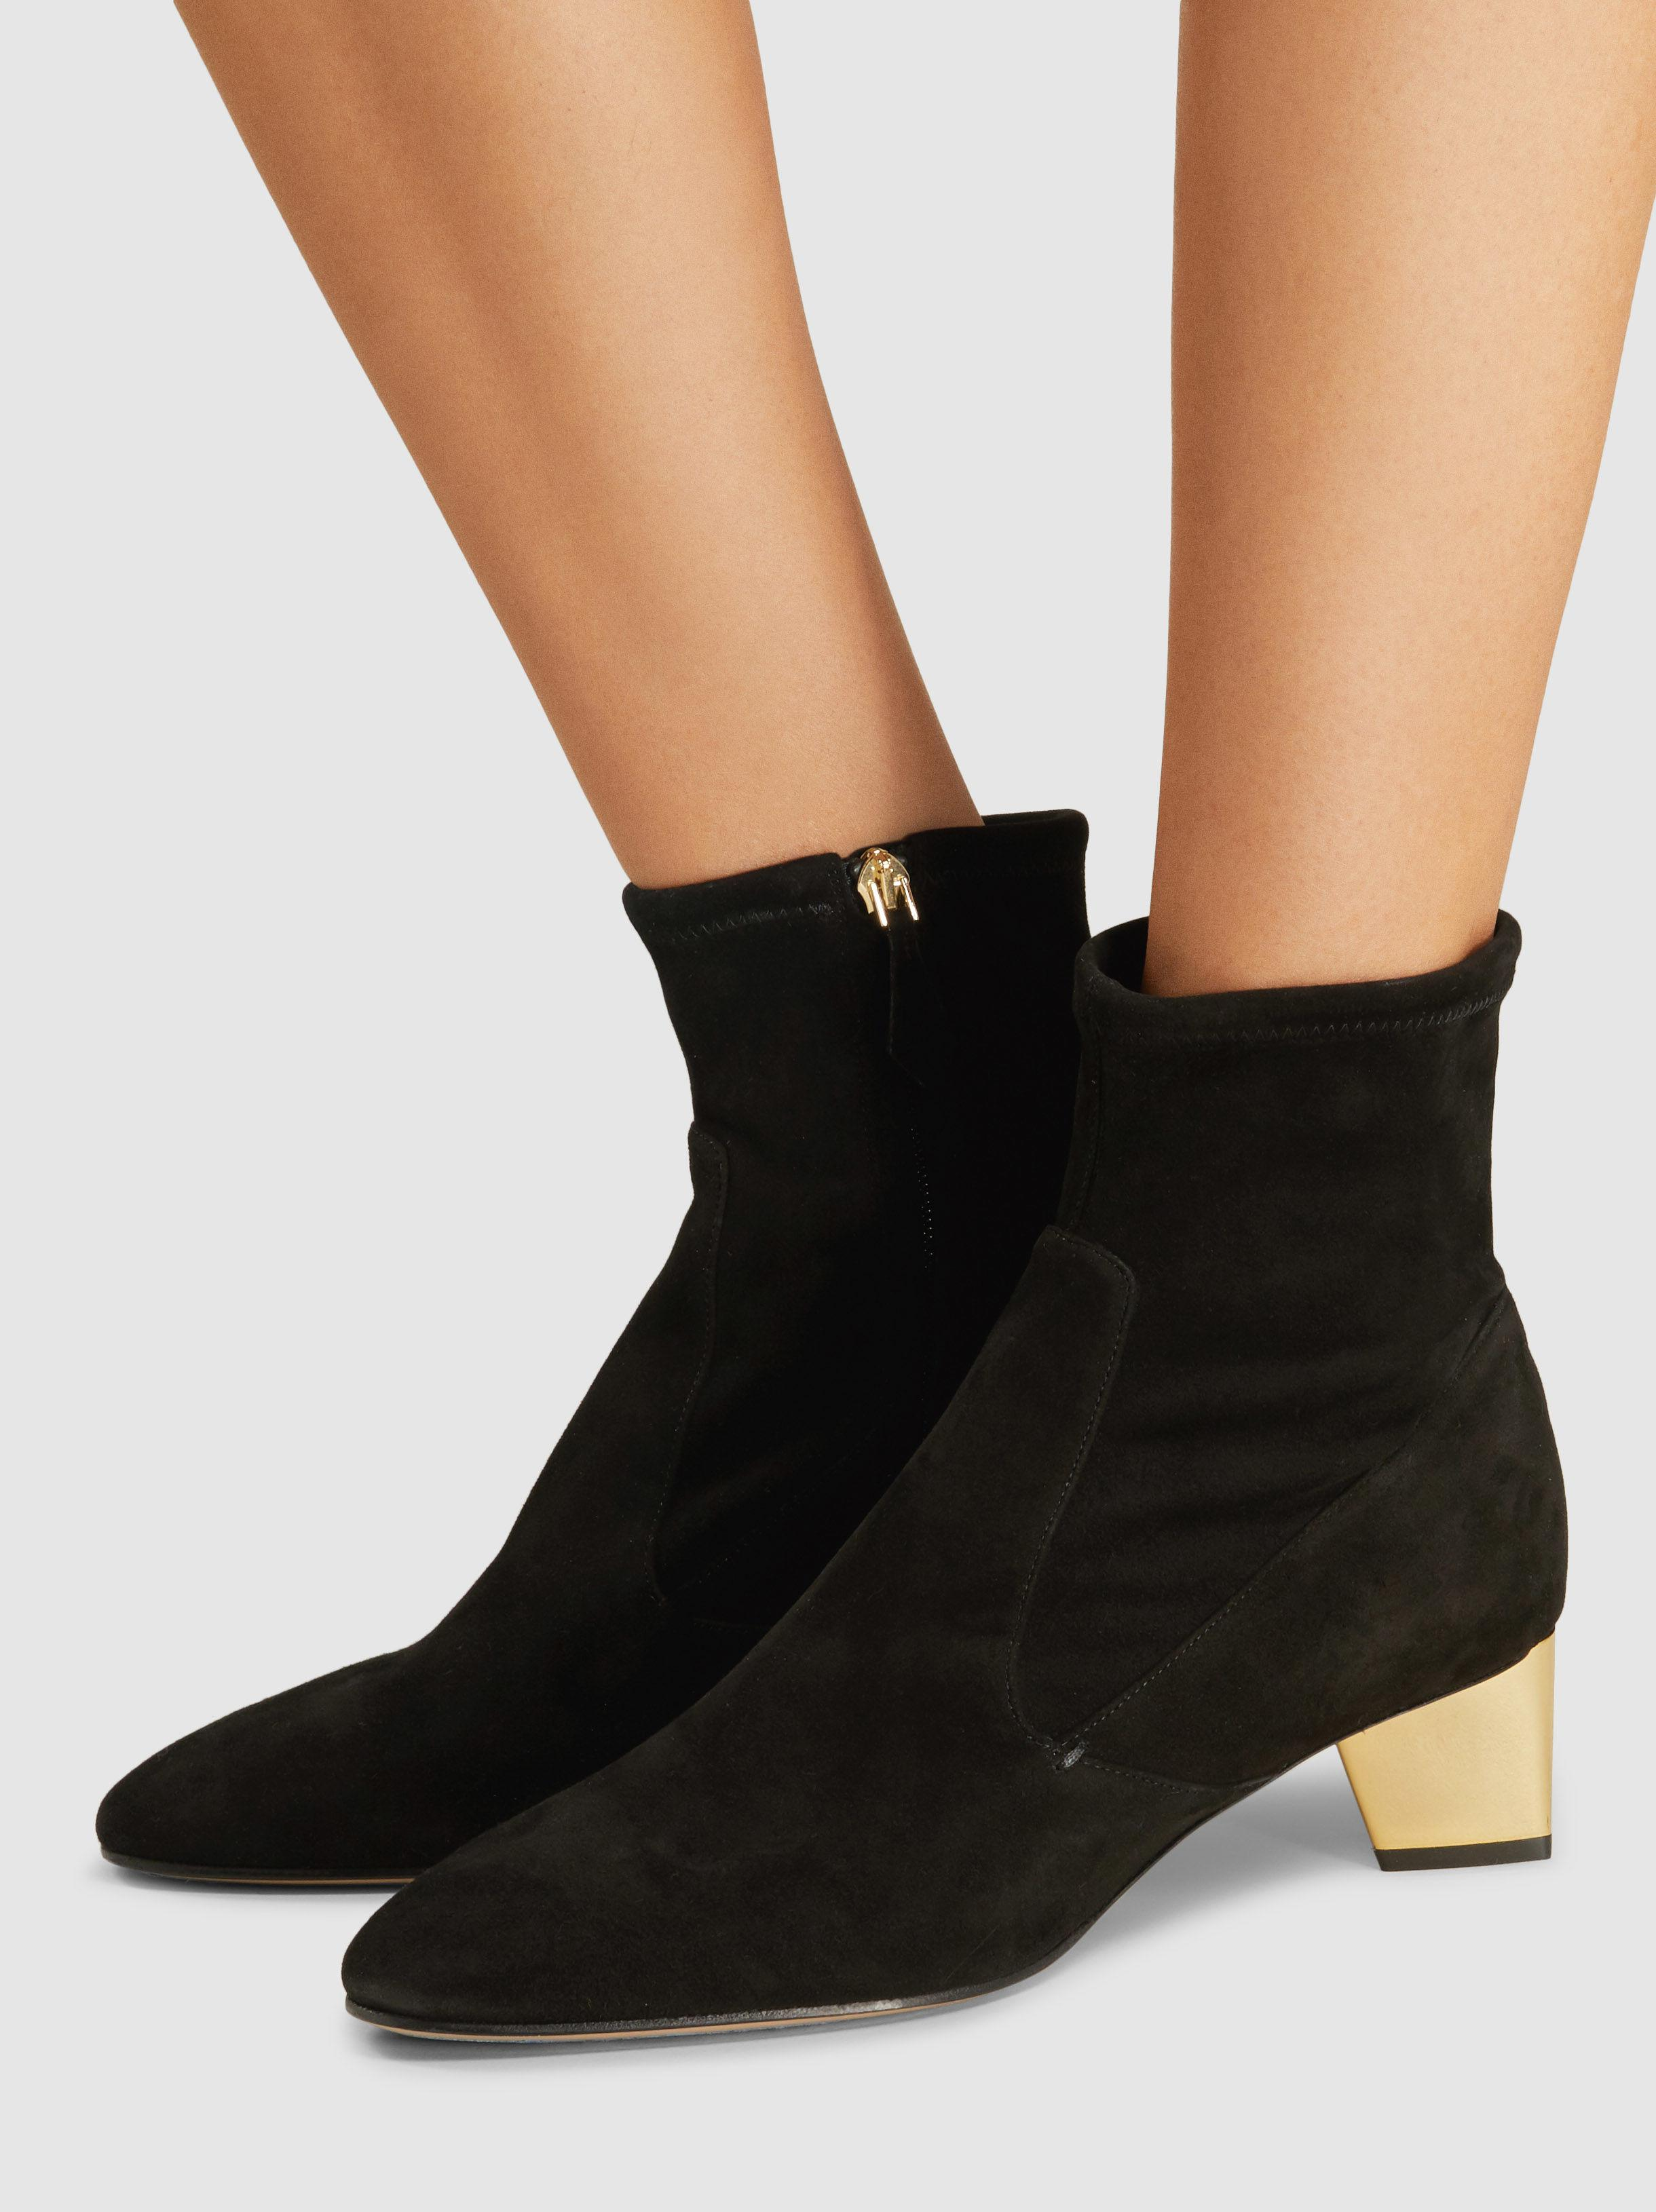 Lyst - Nicholas Kirkwood Prism Suede Ankle Boots in Black e7ba0917e0631